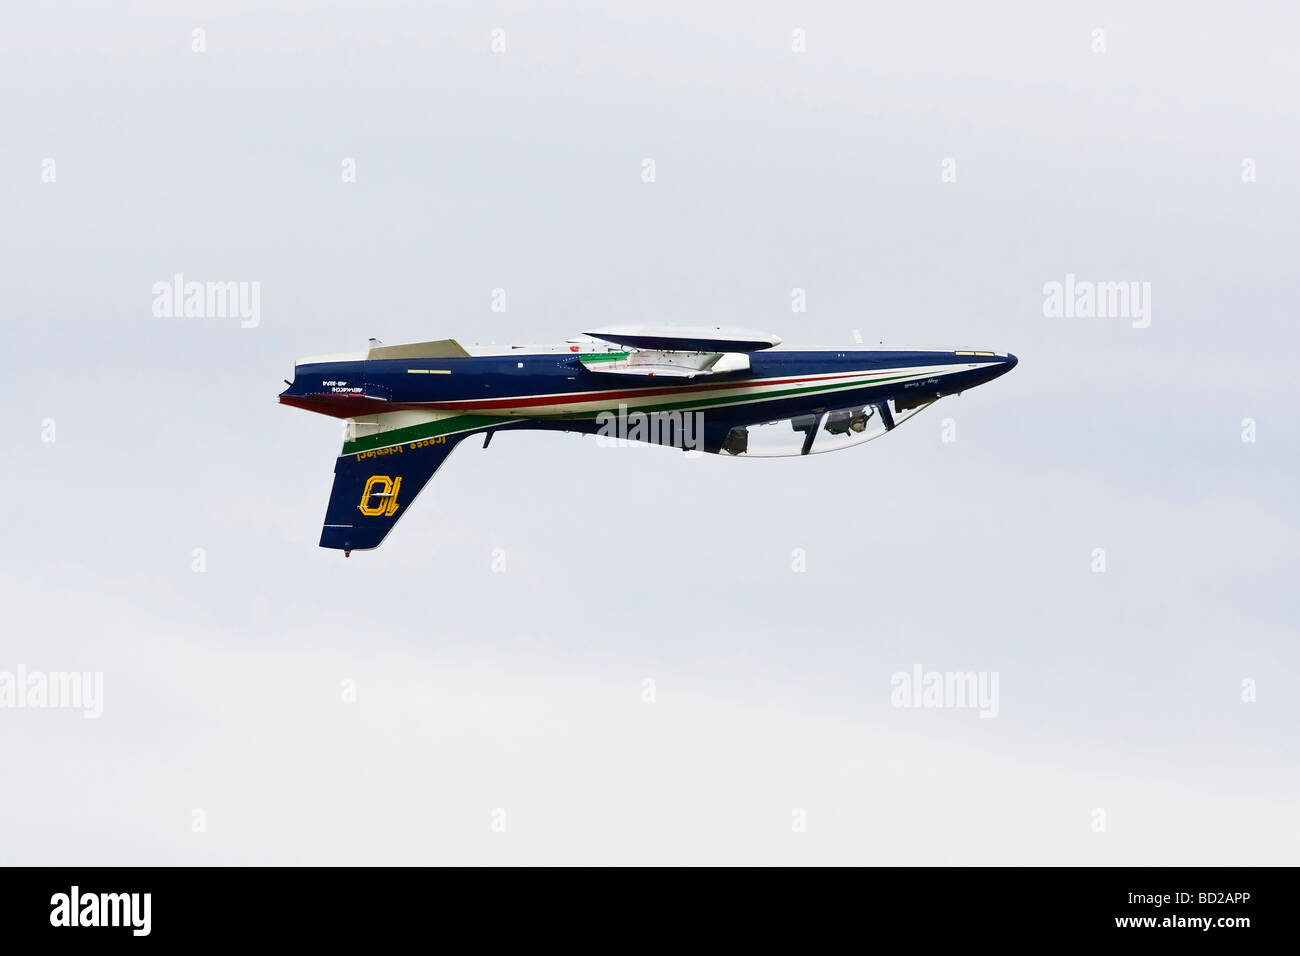 An Aermacchii MB339 of the Italian air force aerobatic team The Frecce tricolori Stock Photo